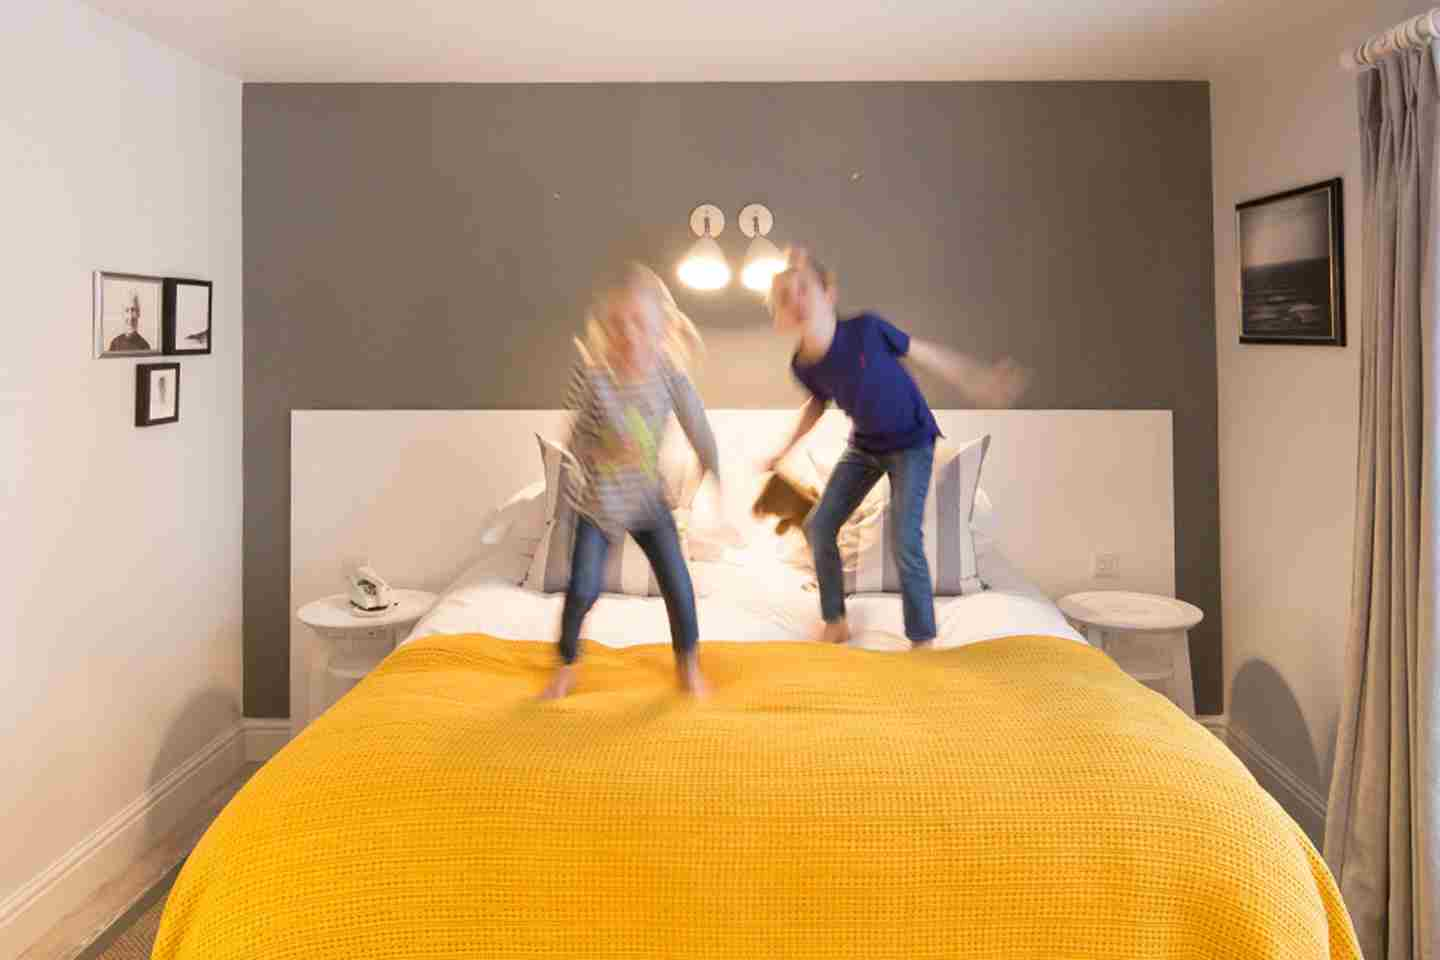 Kids-jumping-on-the-bed.jpg (1)